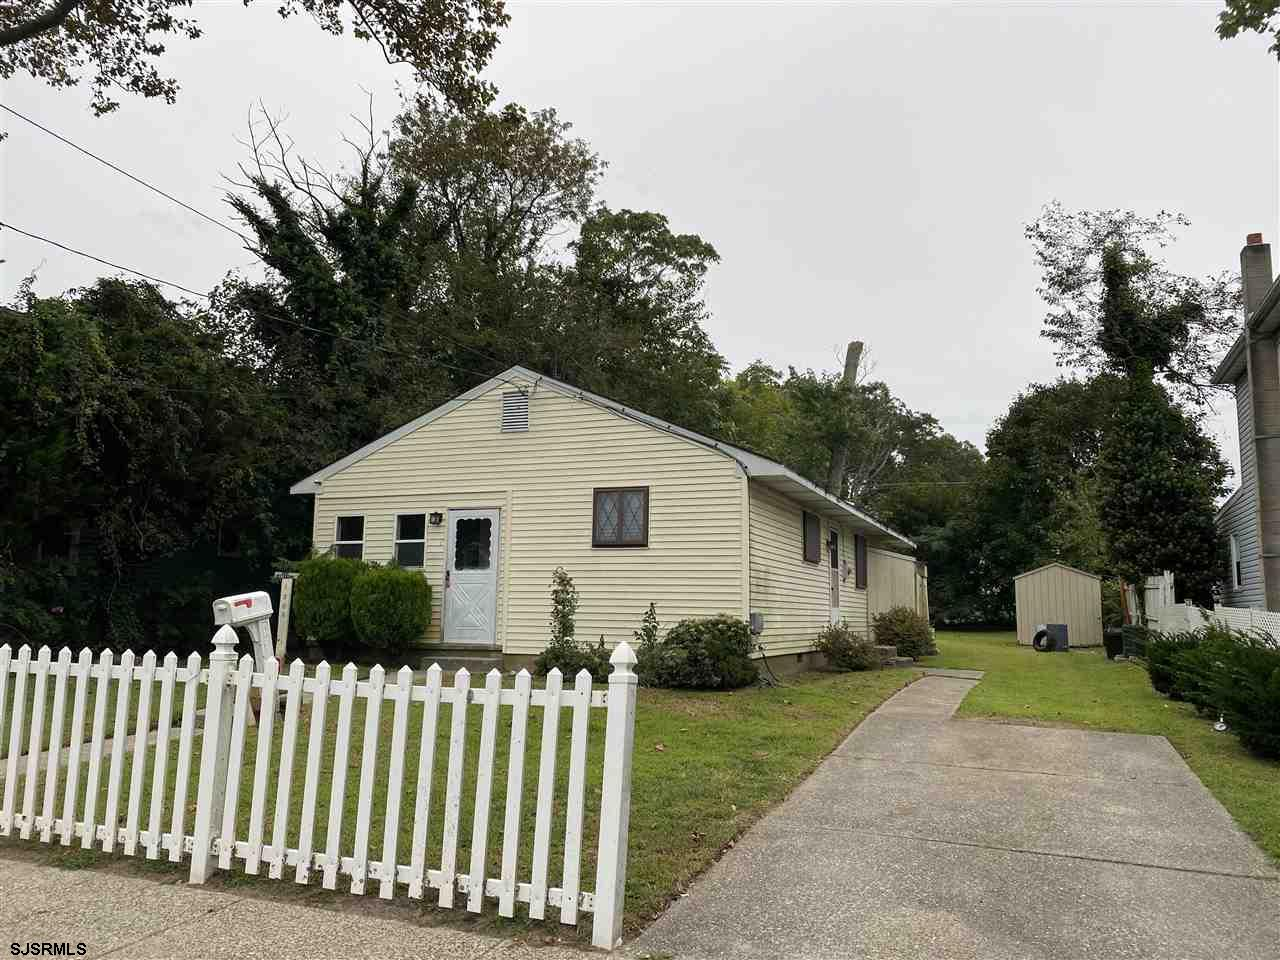 Great Rental Property investment or Starter home in a low traffic, stable neighborhood and quiet str